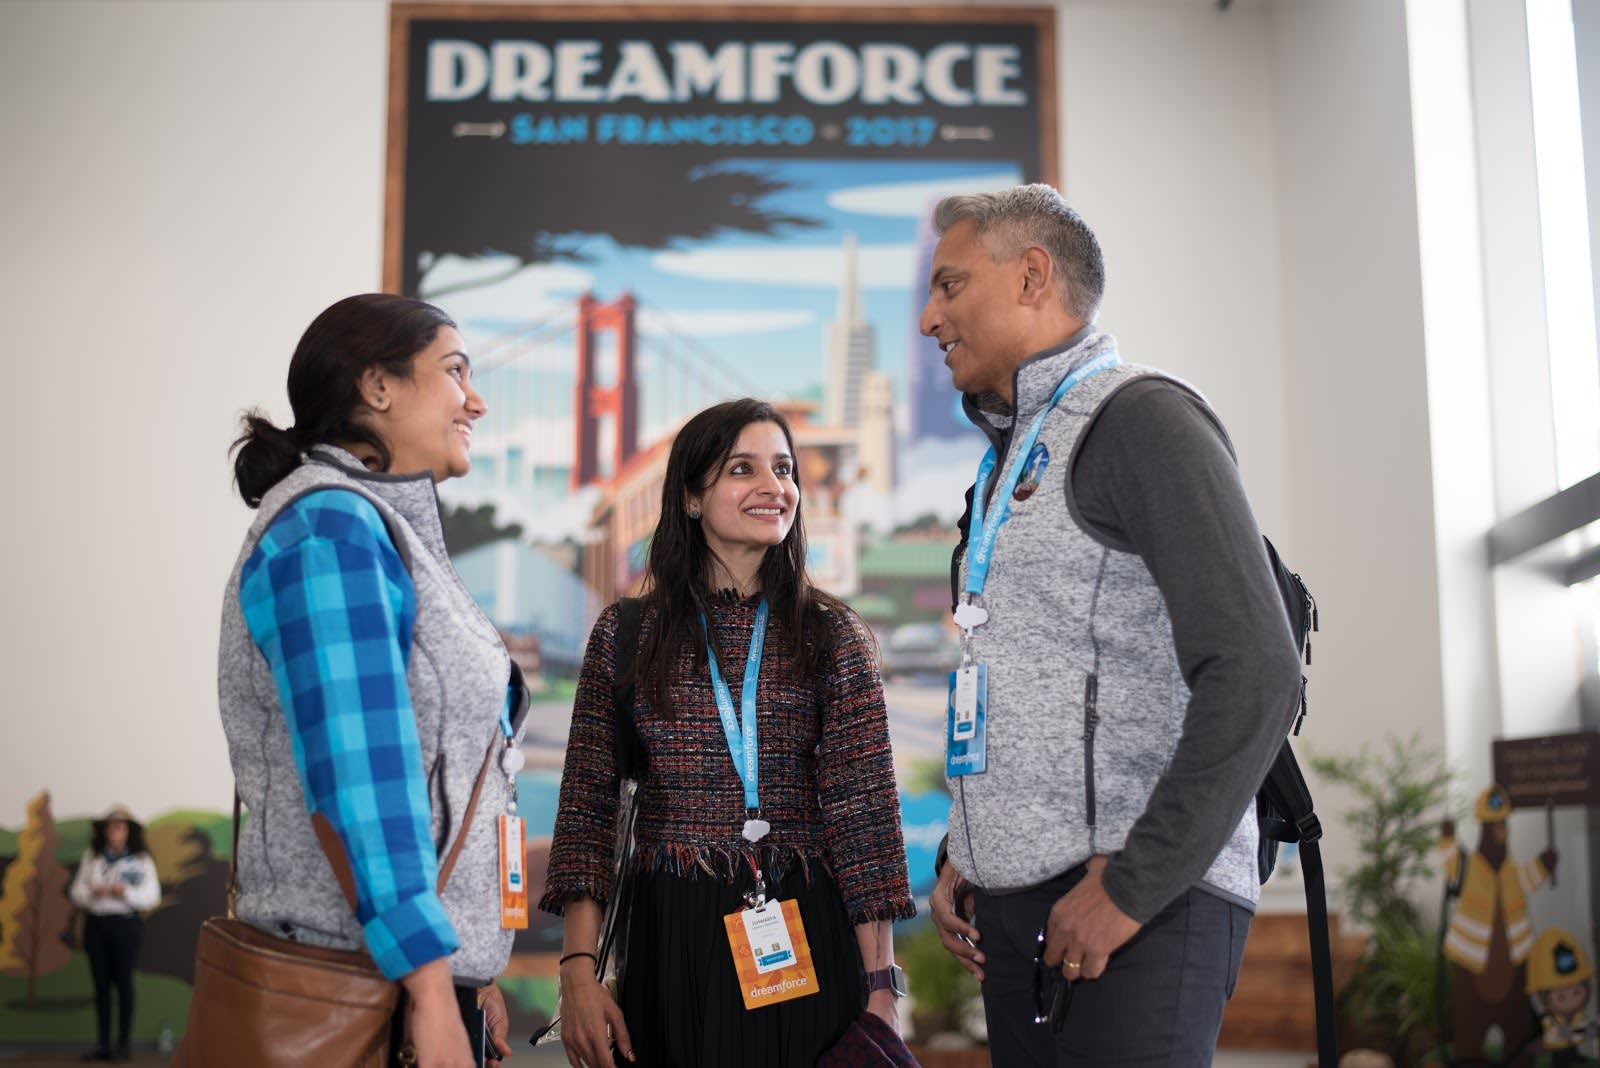 Photo of Trailblazers connecting at Dreamforce 2017.